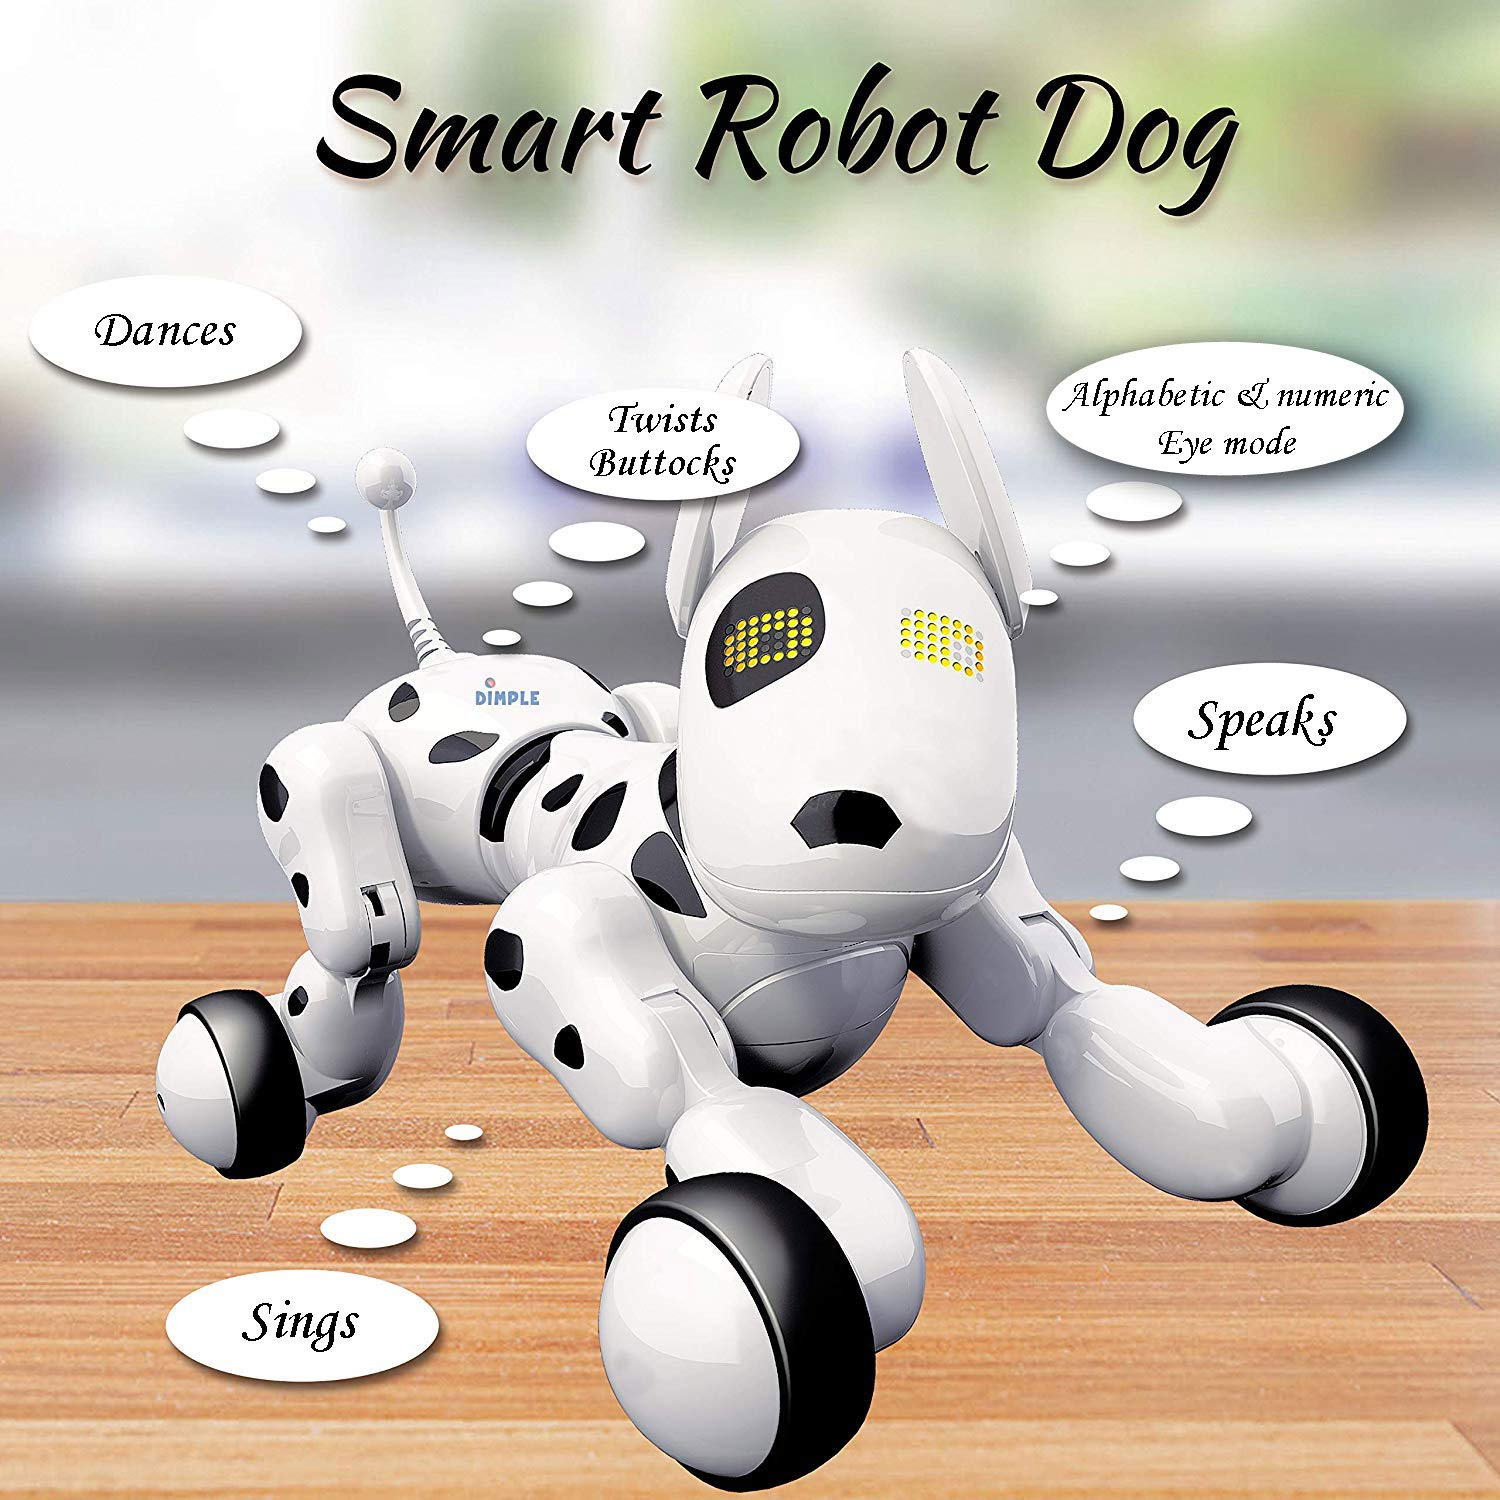 Dimple Interactive Robot Puppy With Wireless Remote Control RC Animal Dog Toy That Sings, Dances, Eye Mode, Speaks for Boys/Girls, Perfect Gift for Kids. by Dimple (Image #5)